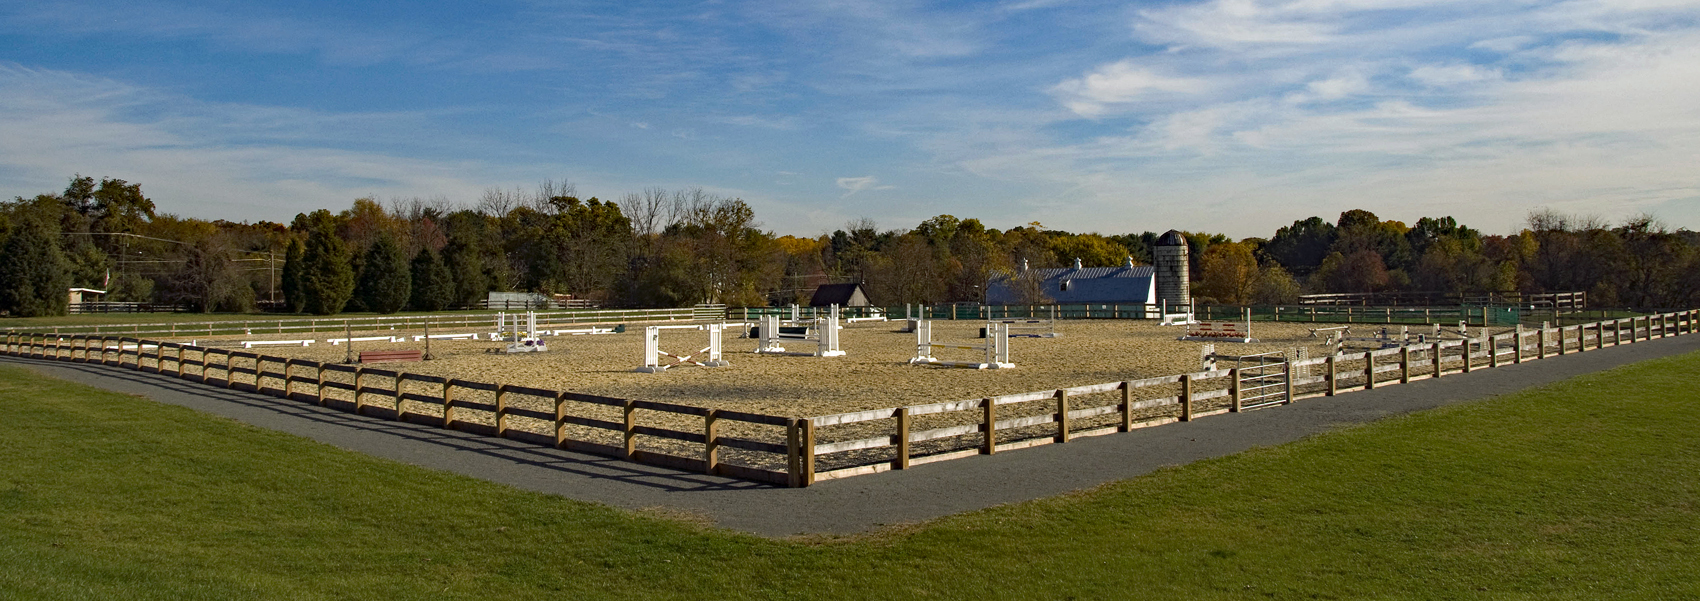 The riding ring at Turner Farm